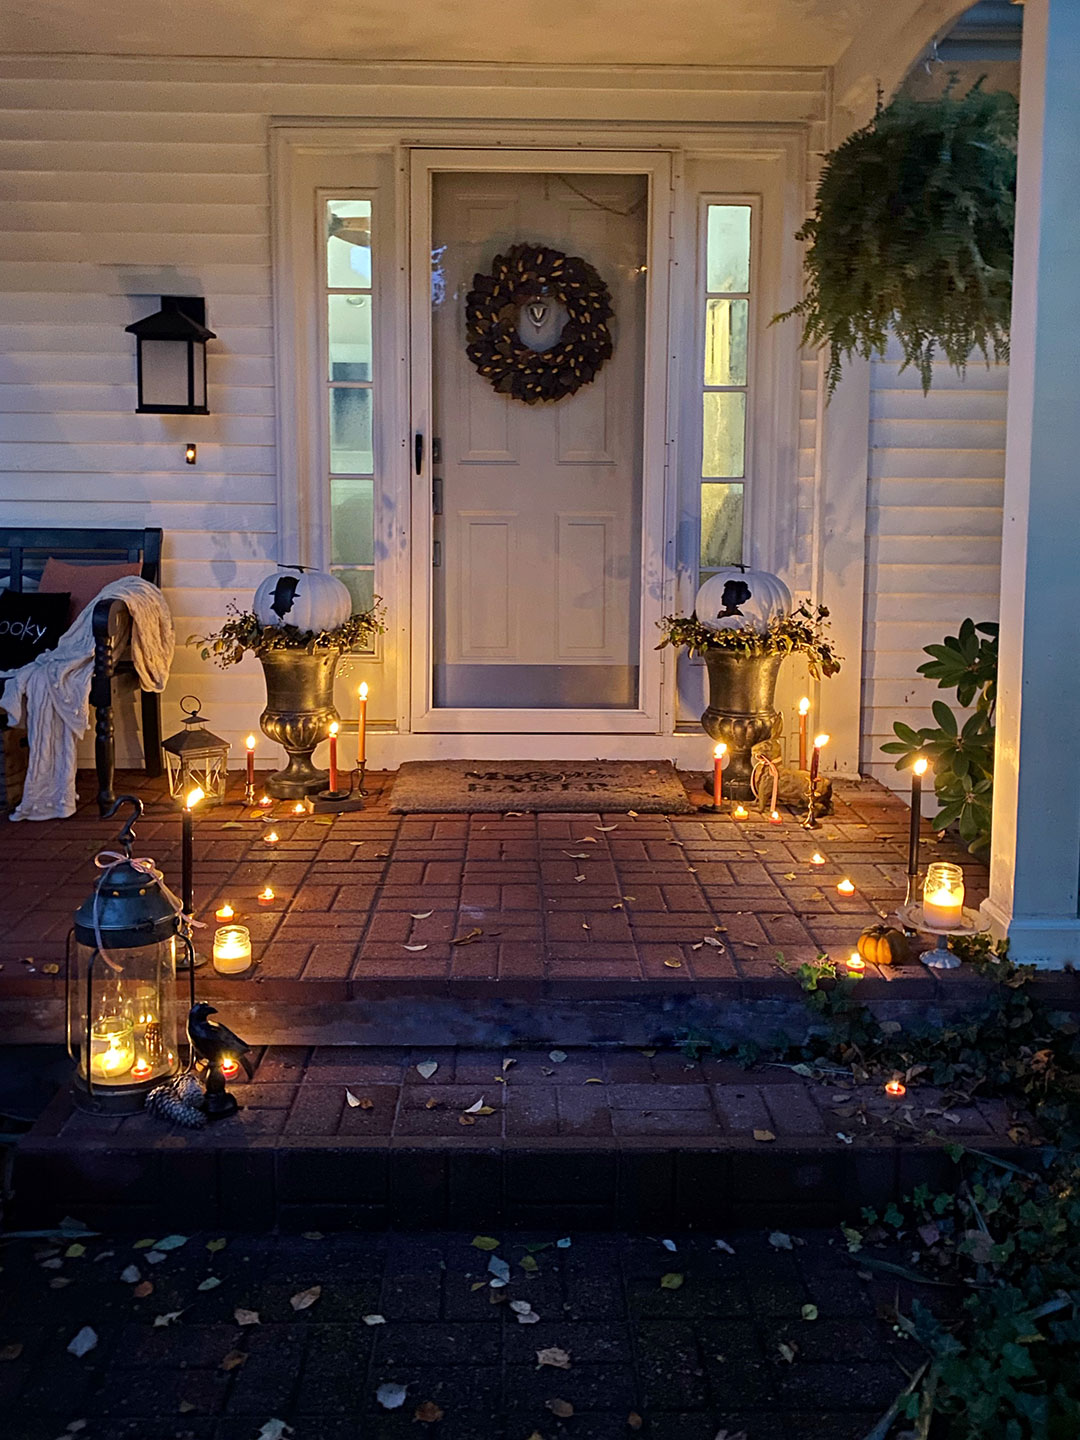 Halloween porch decor with custom no-cut pumpkins painted with vintage-stlye silhouettes